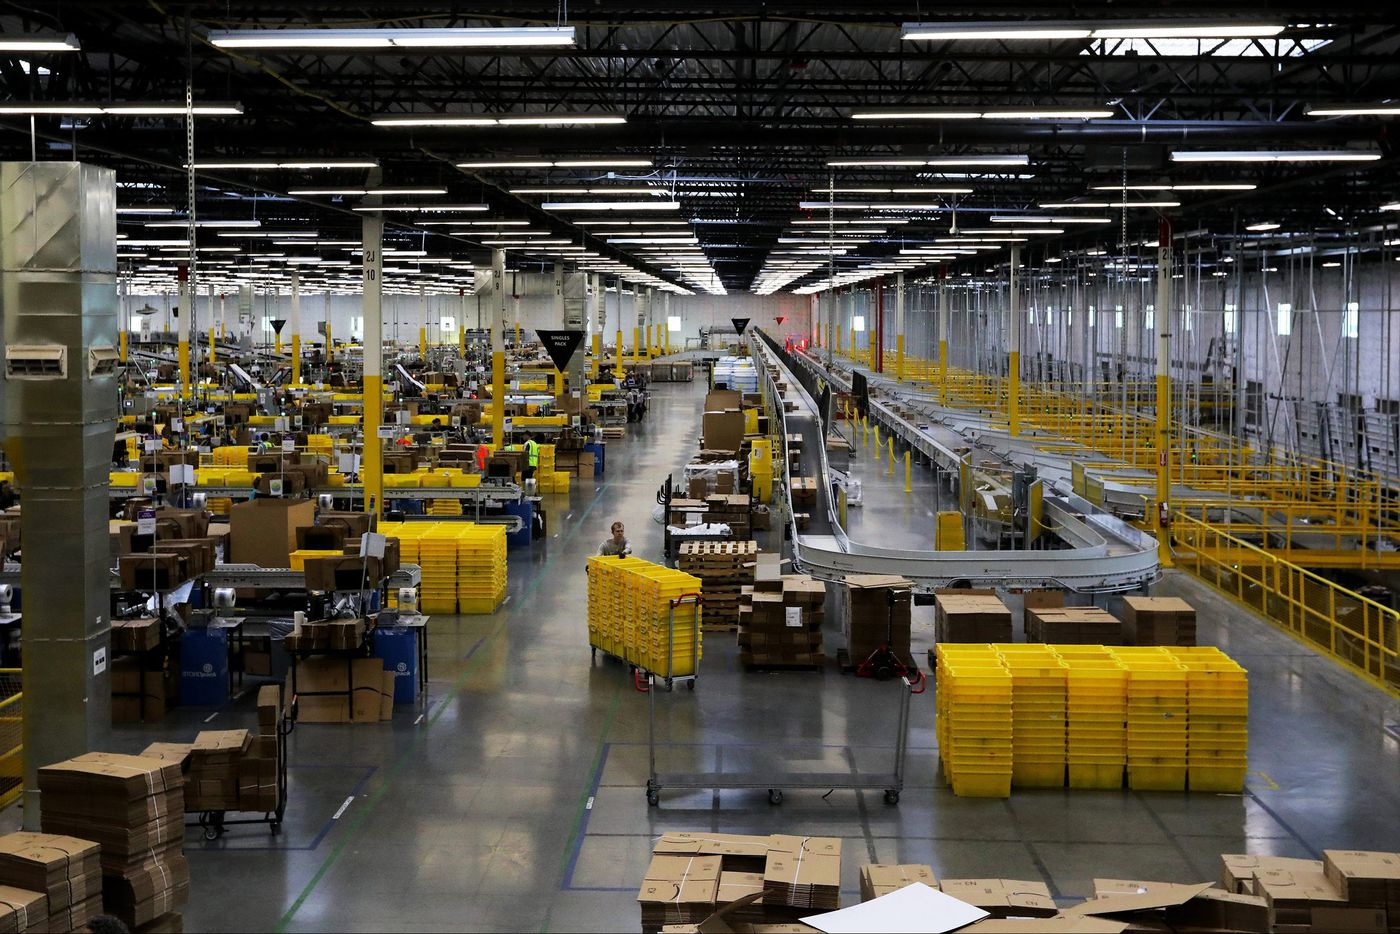 Why Congress shouldn't emulate Amazon | Opinion